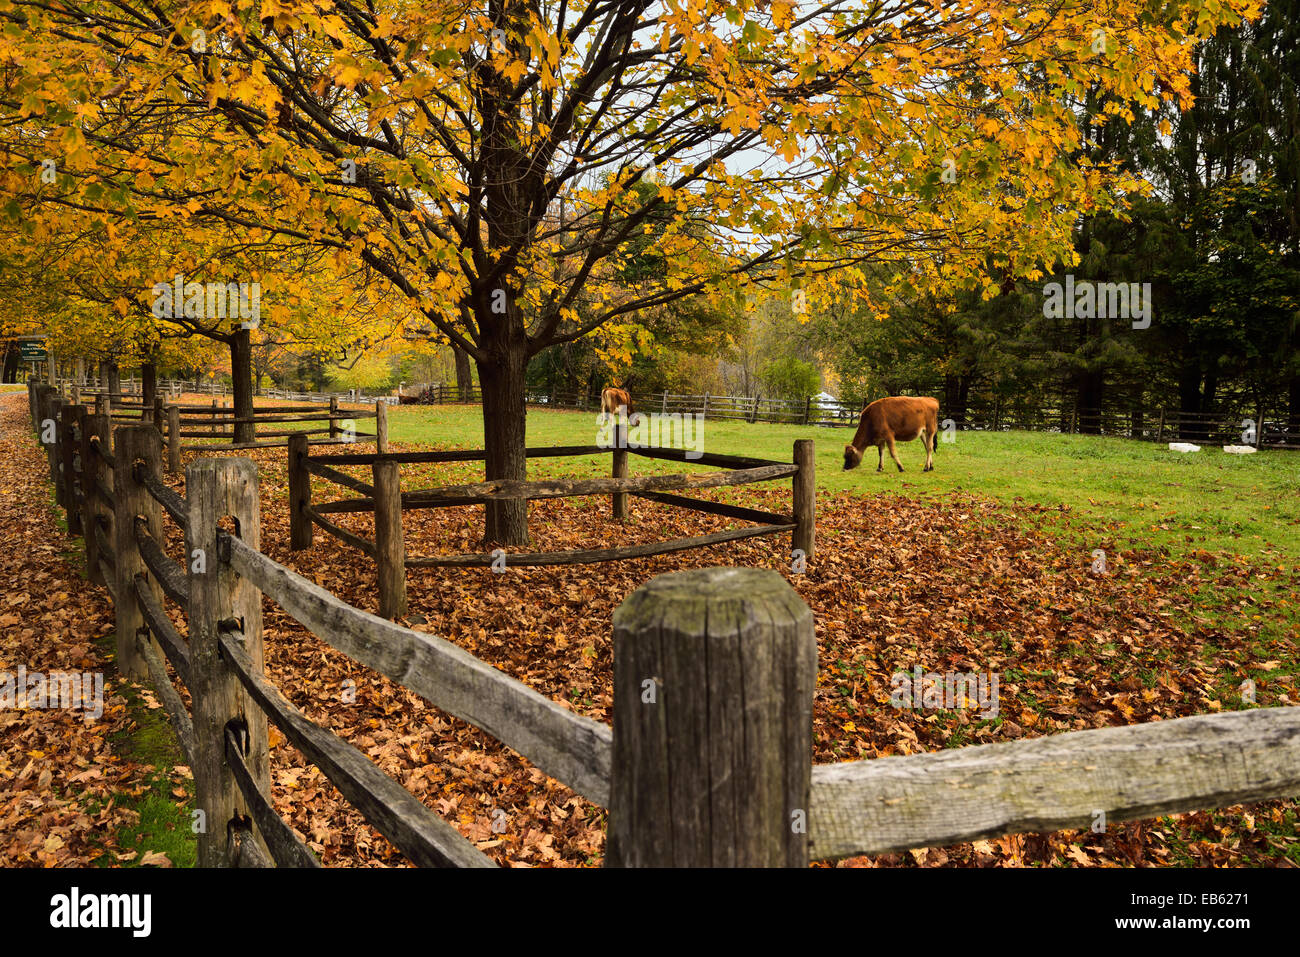 Dairy cows in paddock at Billings Farm and Museum in the Fall in Woodstock Vermont USA - Stock Image